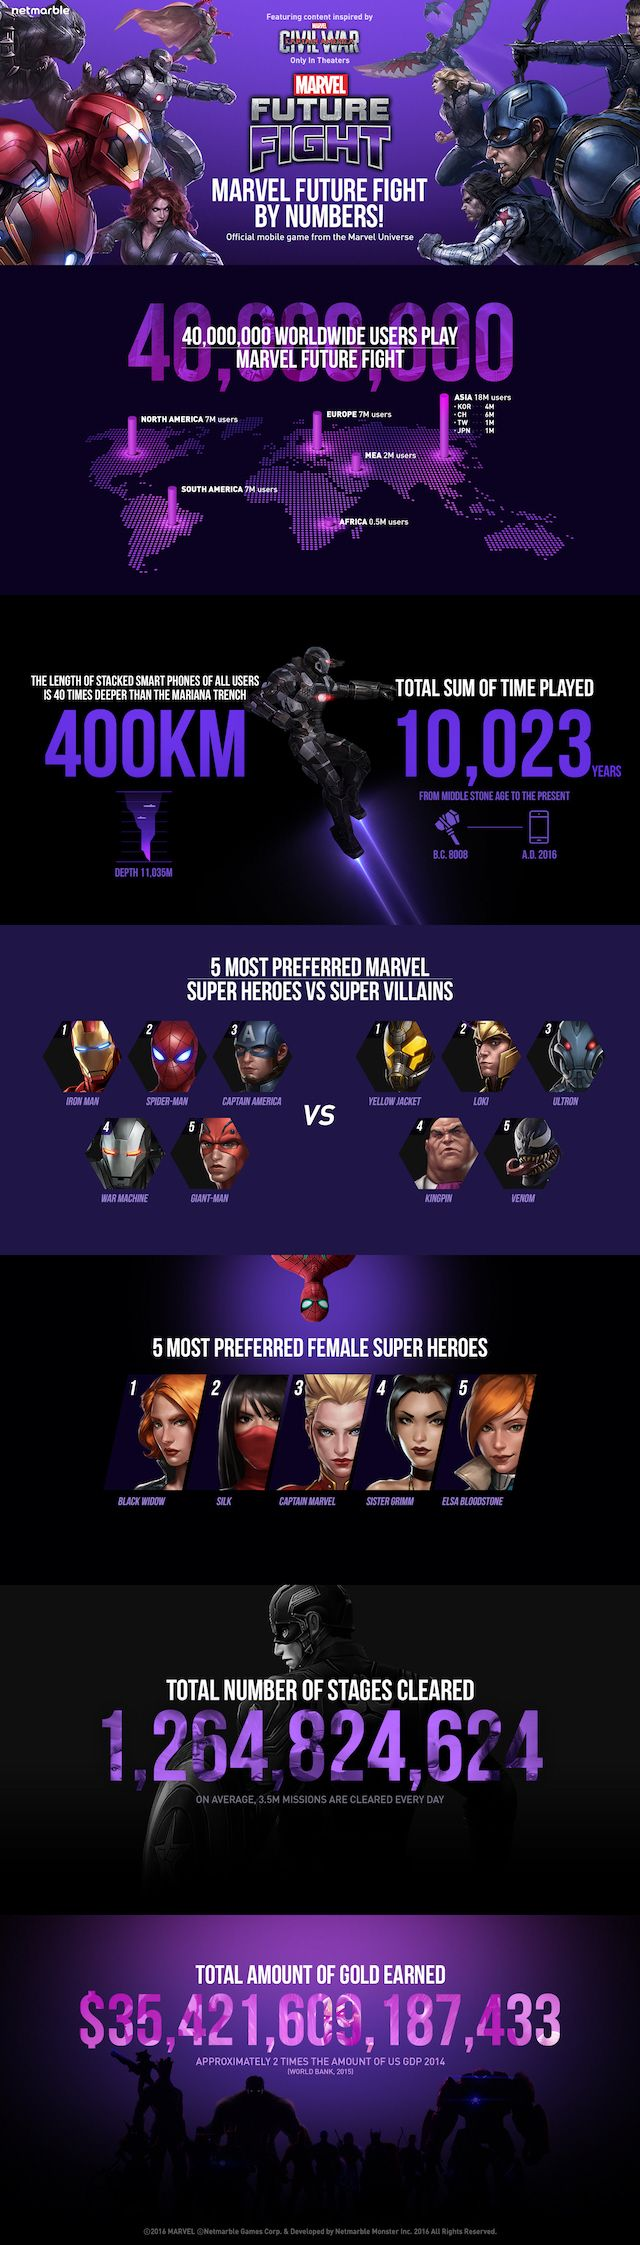 Marvel Future Fight Turns One, Crosses 40 Million Worldwide Downloads (Infographic) In celebration of the one-year anniversary of Marvel Future Fight, Netmarble Games released an infographic containing stats from the game's first year.